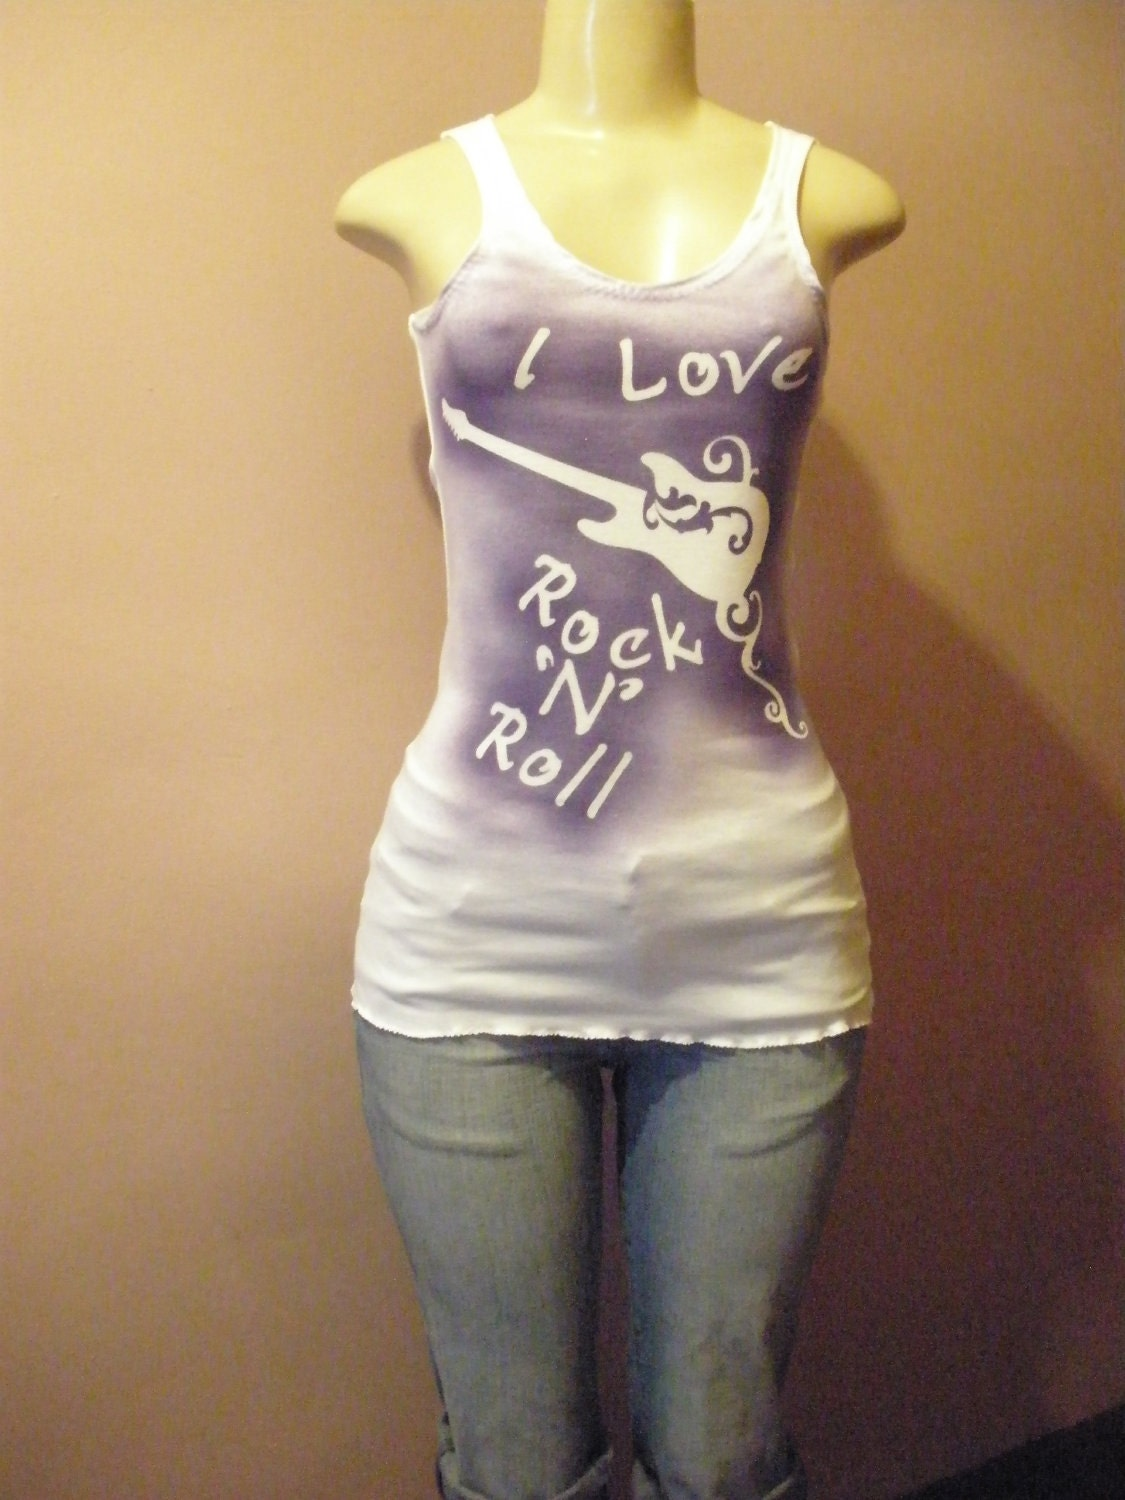 Cool Looking Sleeveless Tank Top with Unique Message ( I Love Rock N Roll ) Size Small/Medium/Large